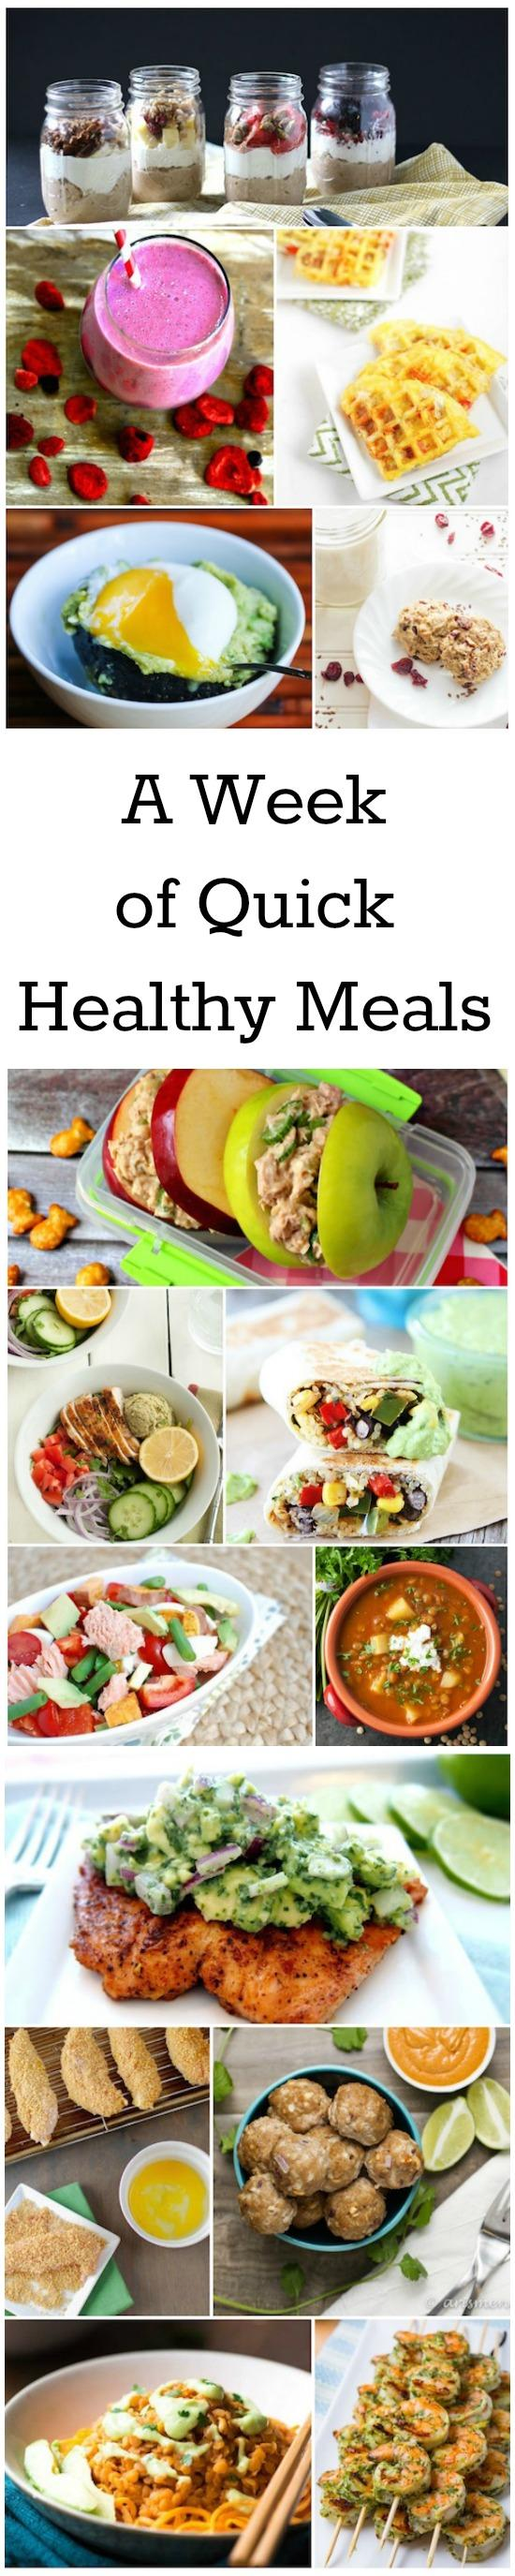 A Week of Quick, Healthy Meal Ideas